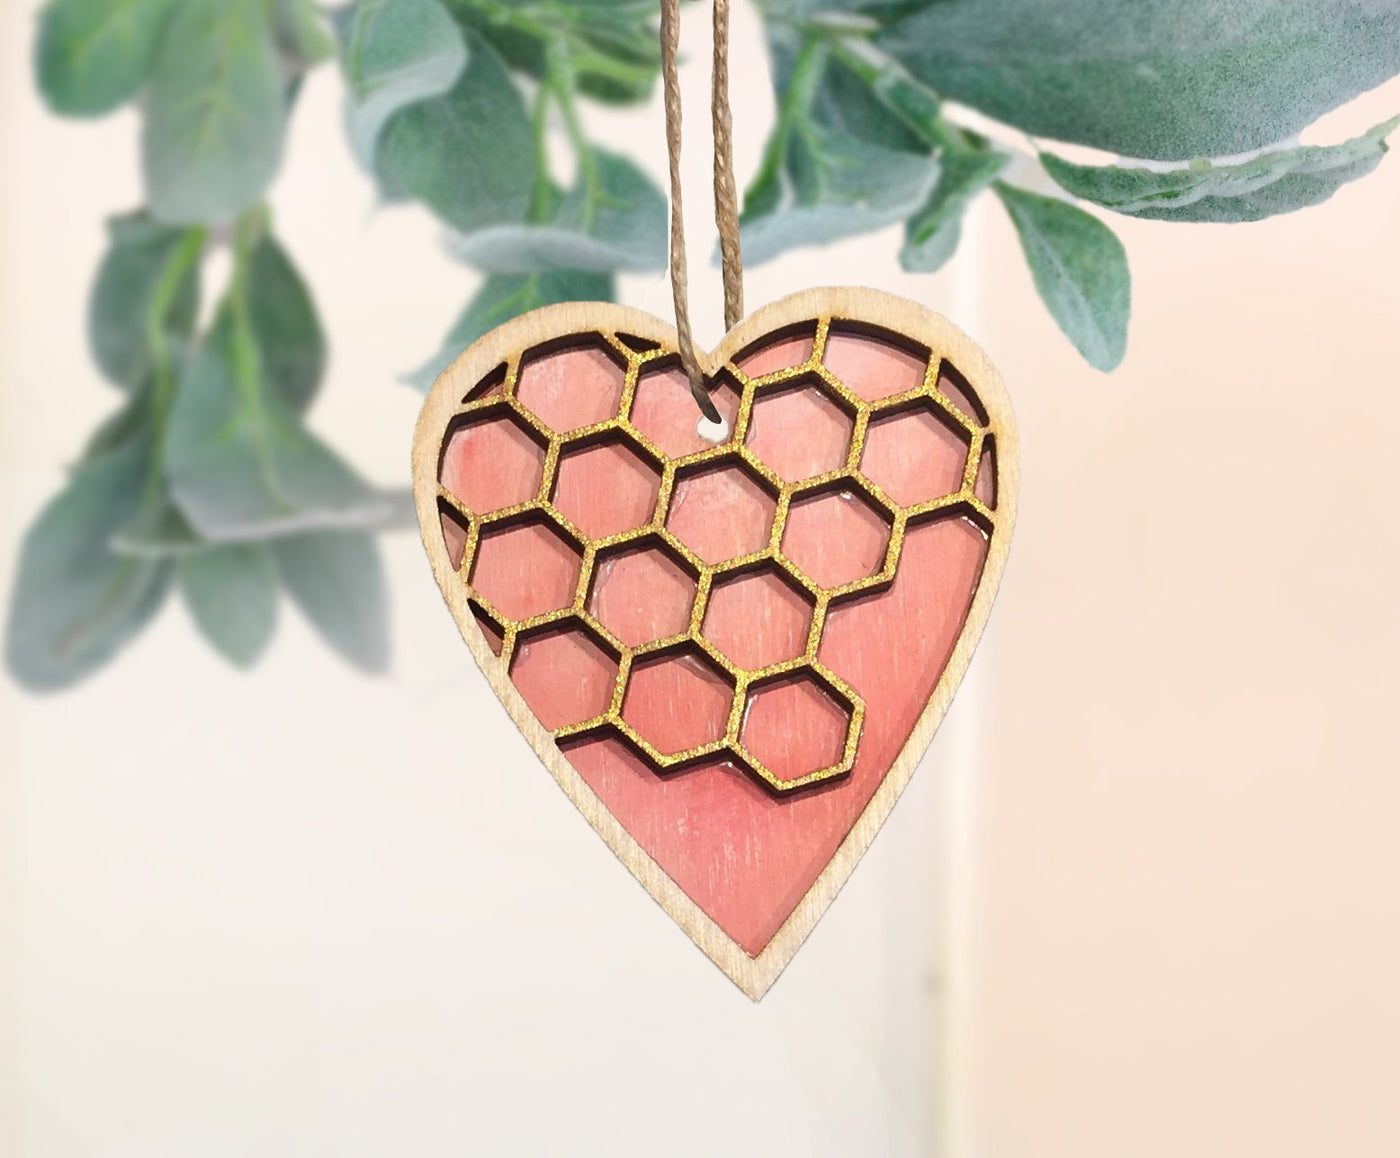 Bee hive heart ornament